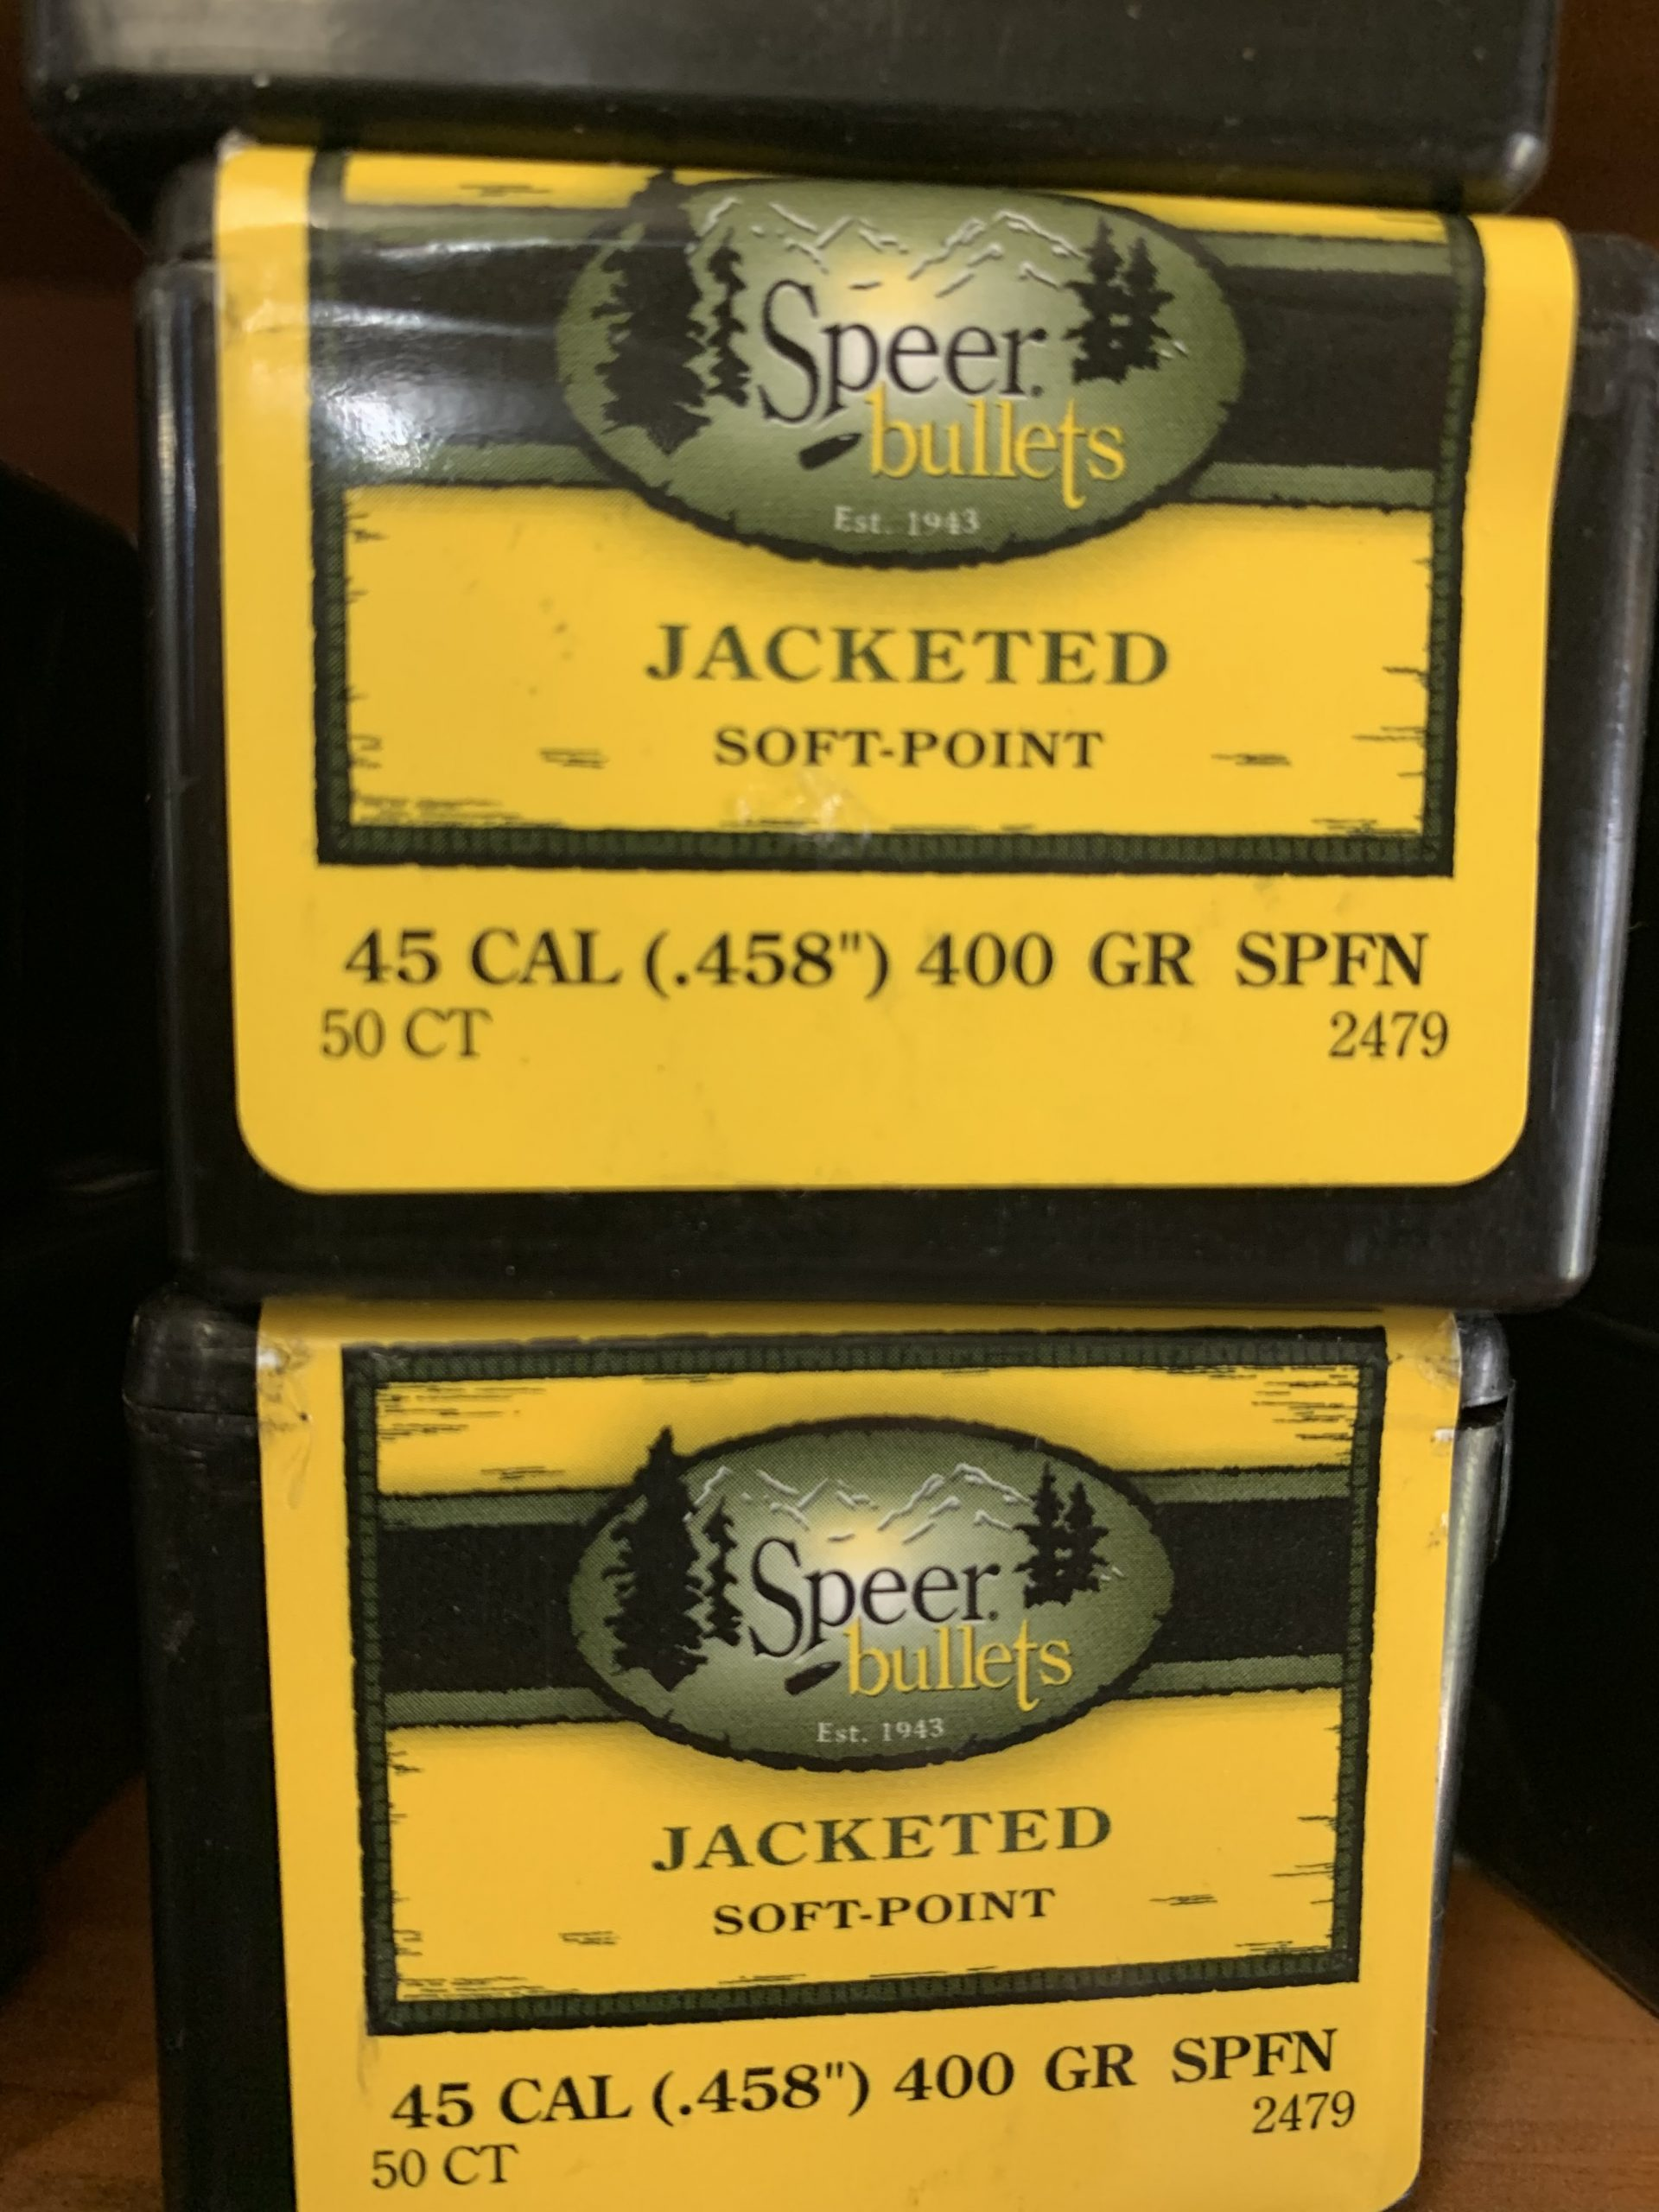 Speer 45/458 cal jacket soft point 400gr SPFN projectiles (50 pack)